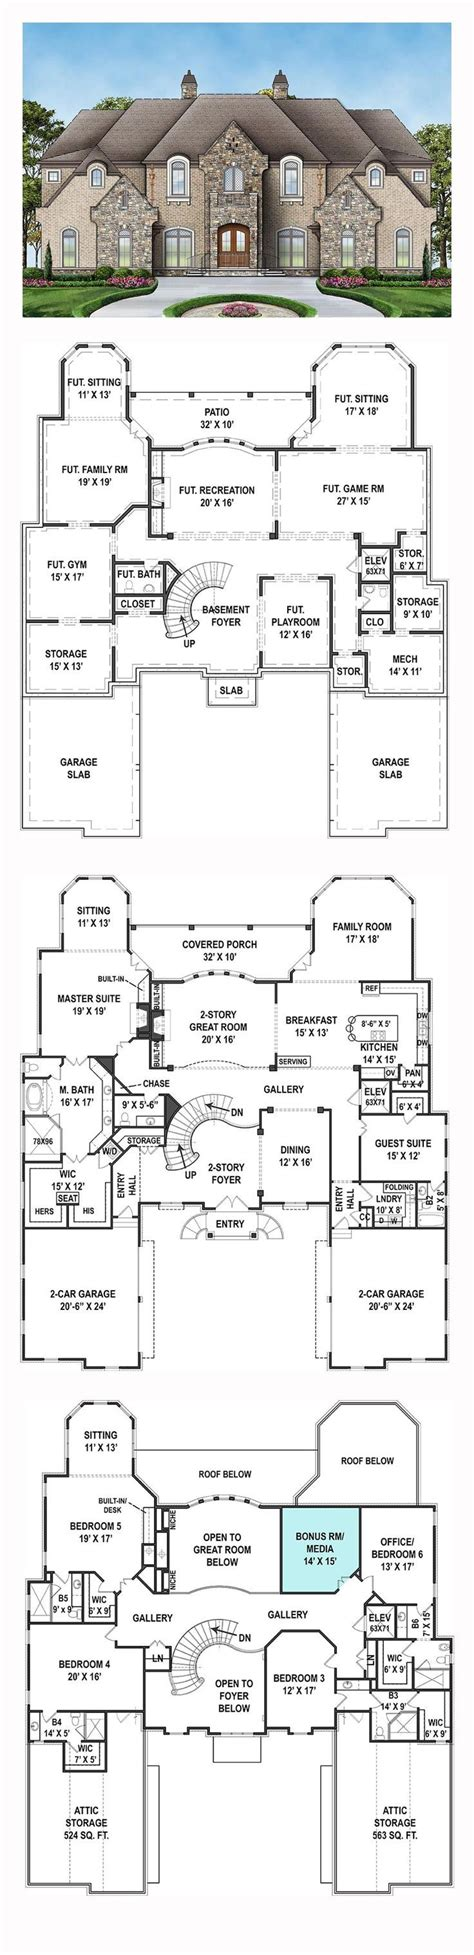 new luxury house plans best 25 new house plans ideas on house plans